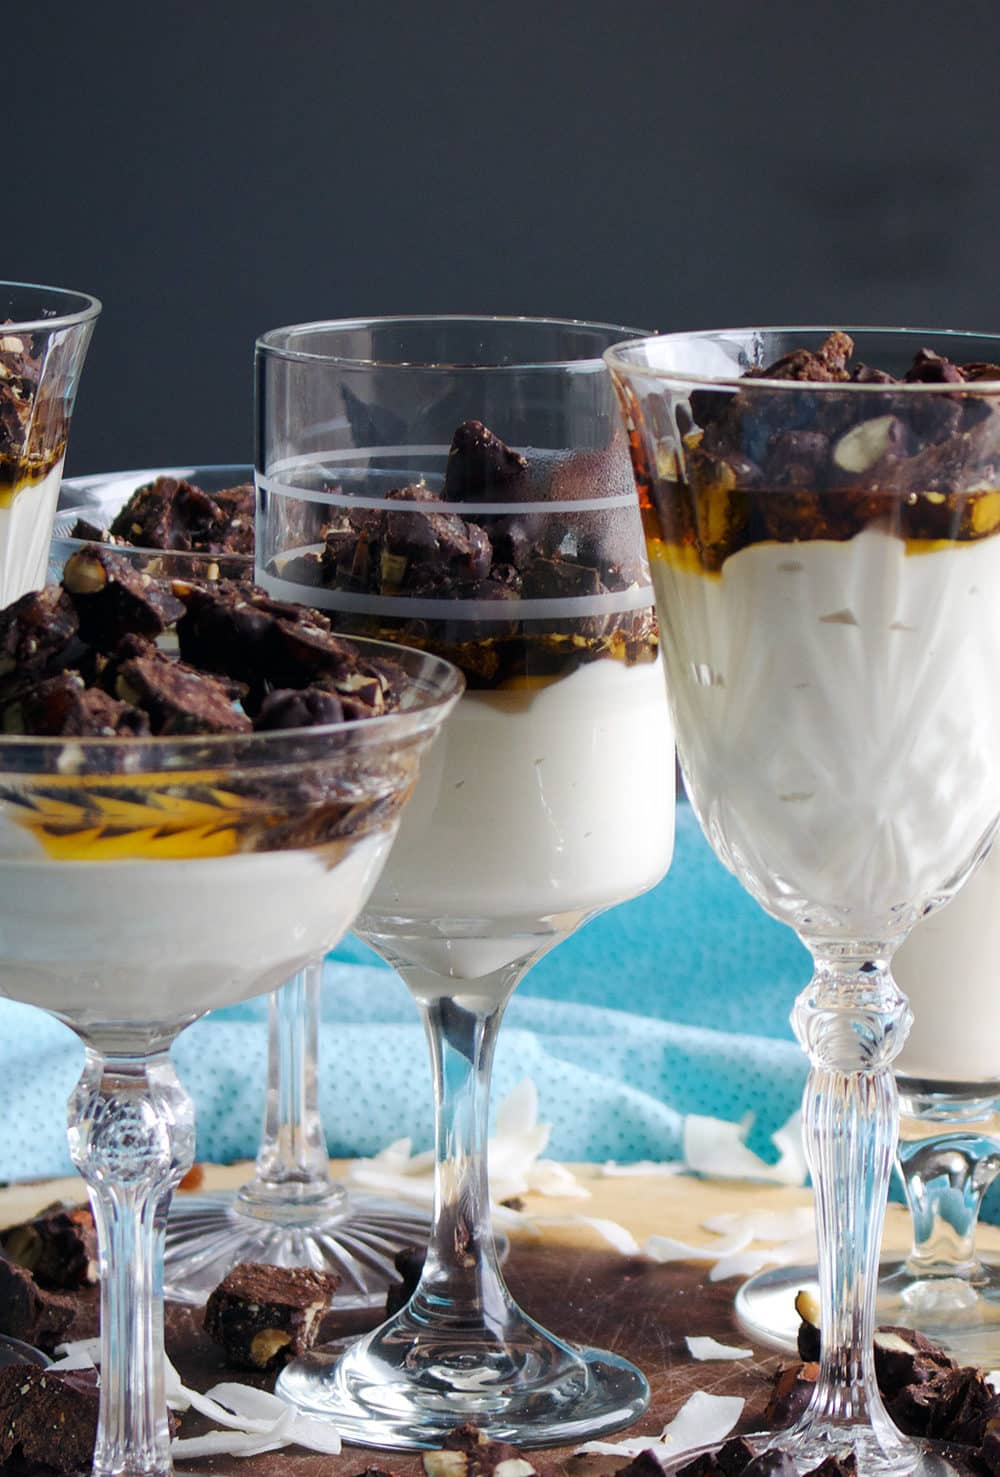 Sugar Free Coconut Maple Panna Cotta with Chocolate Almond Date Clusters